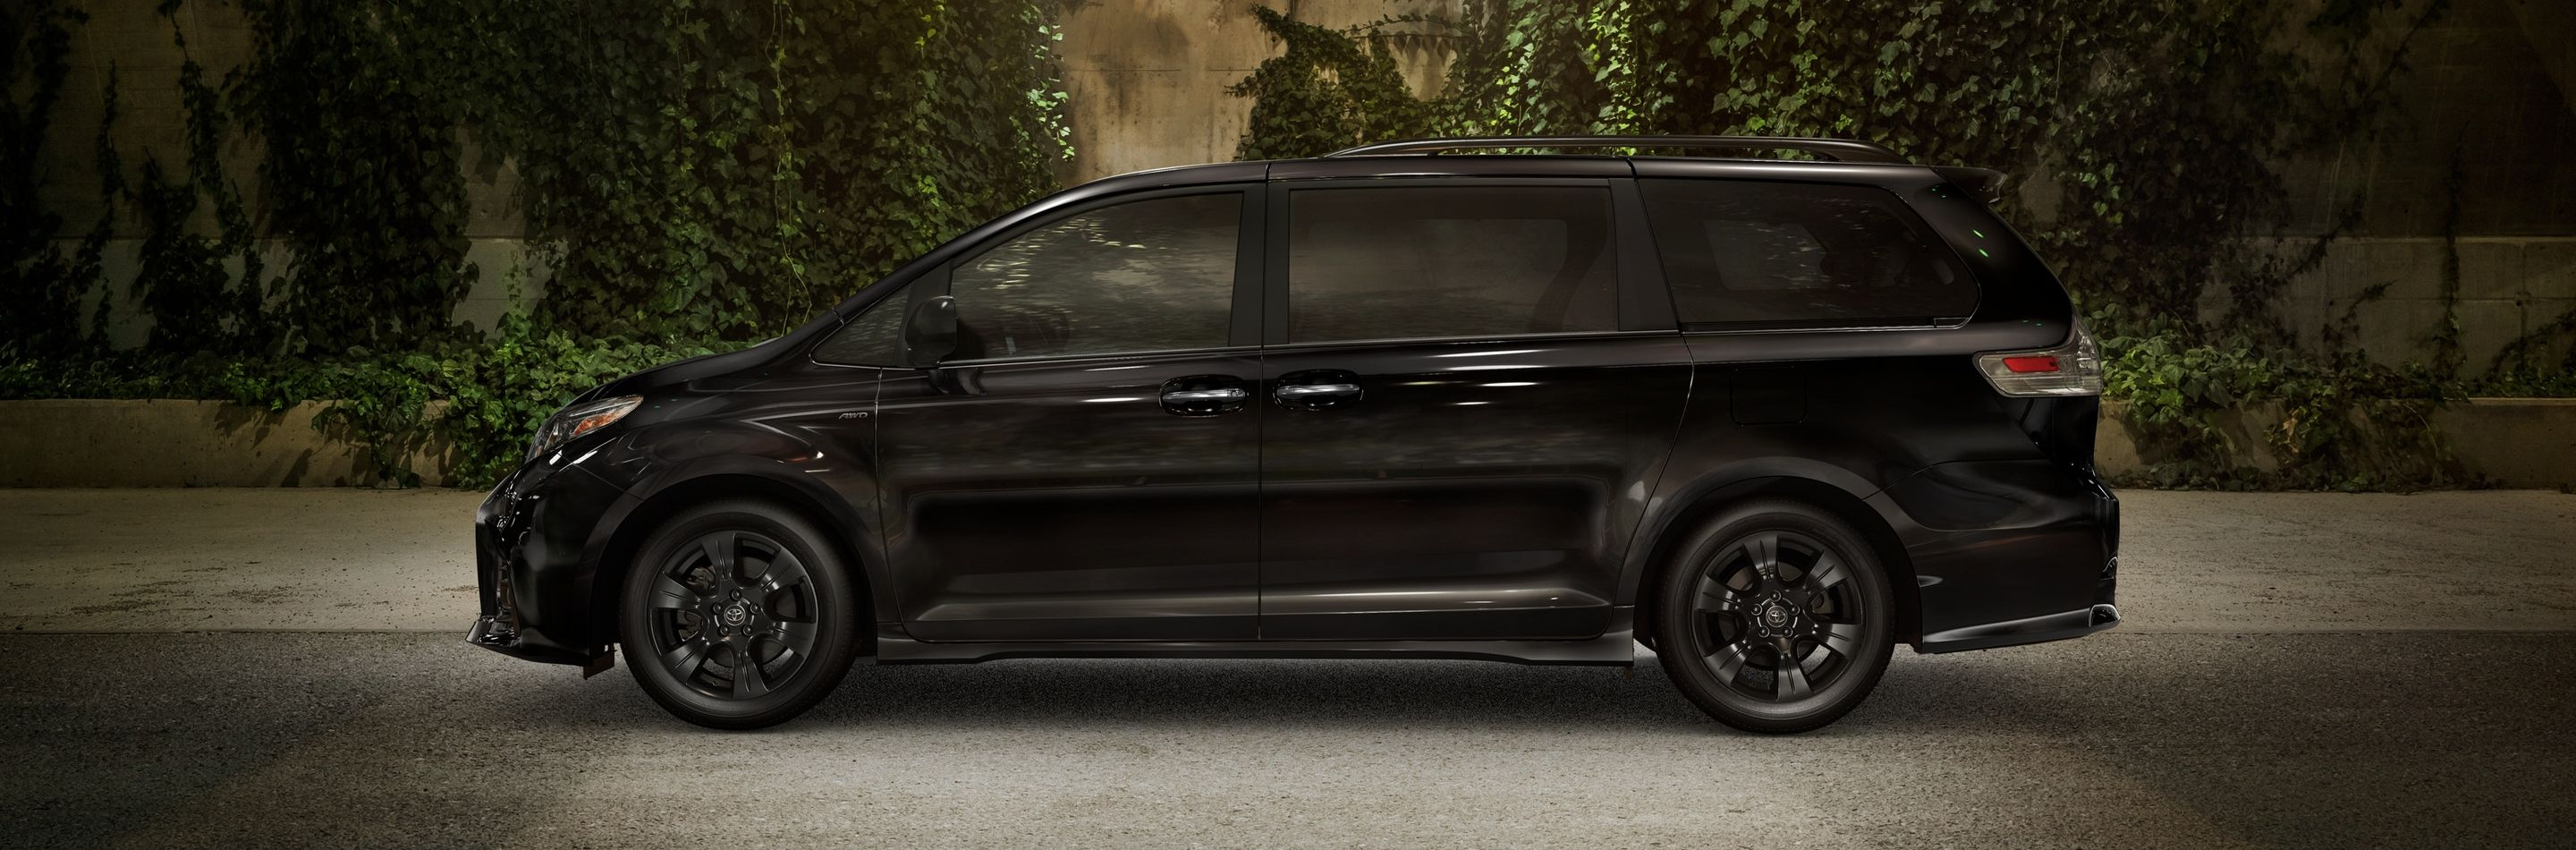 What's New For the 2020 Toyota Sienna near Stamford, CT?